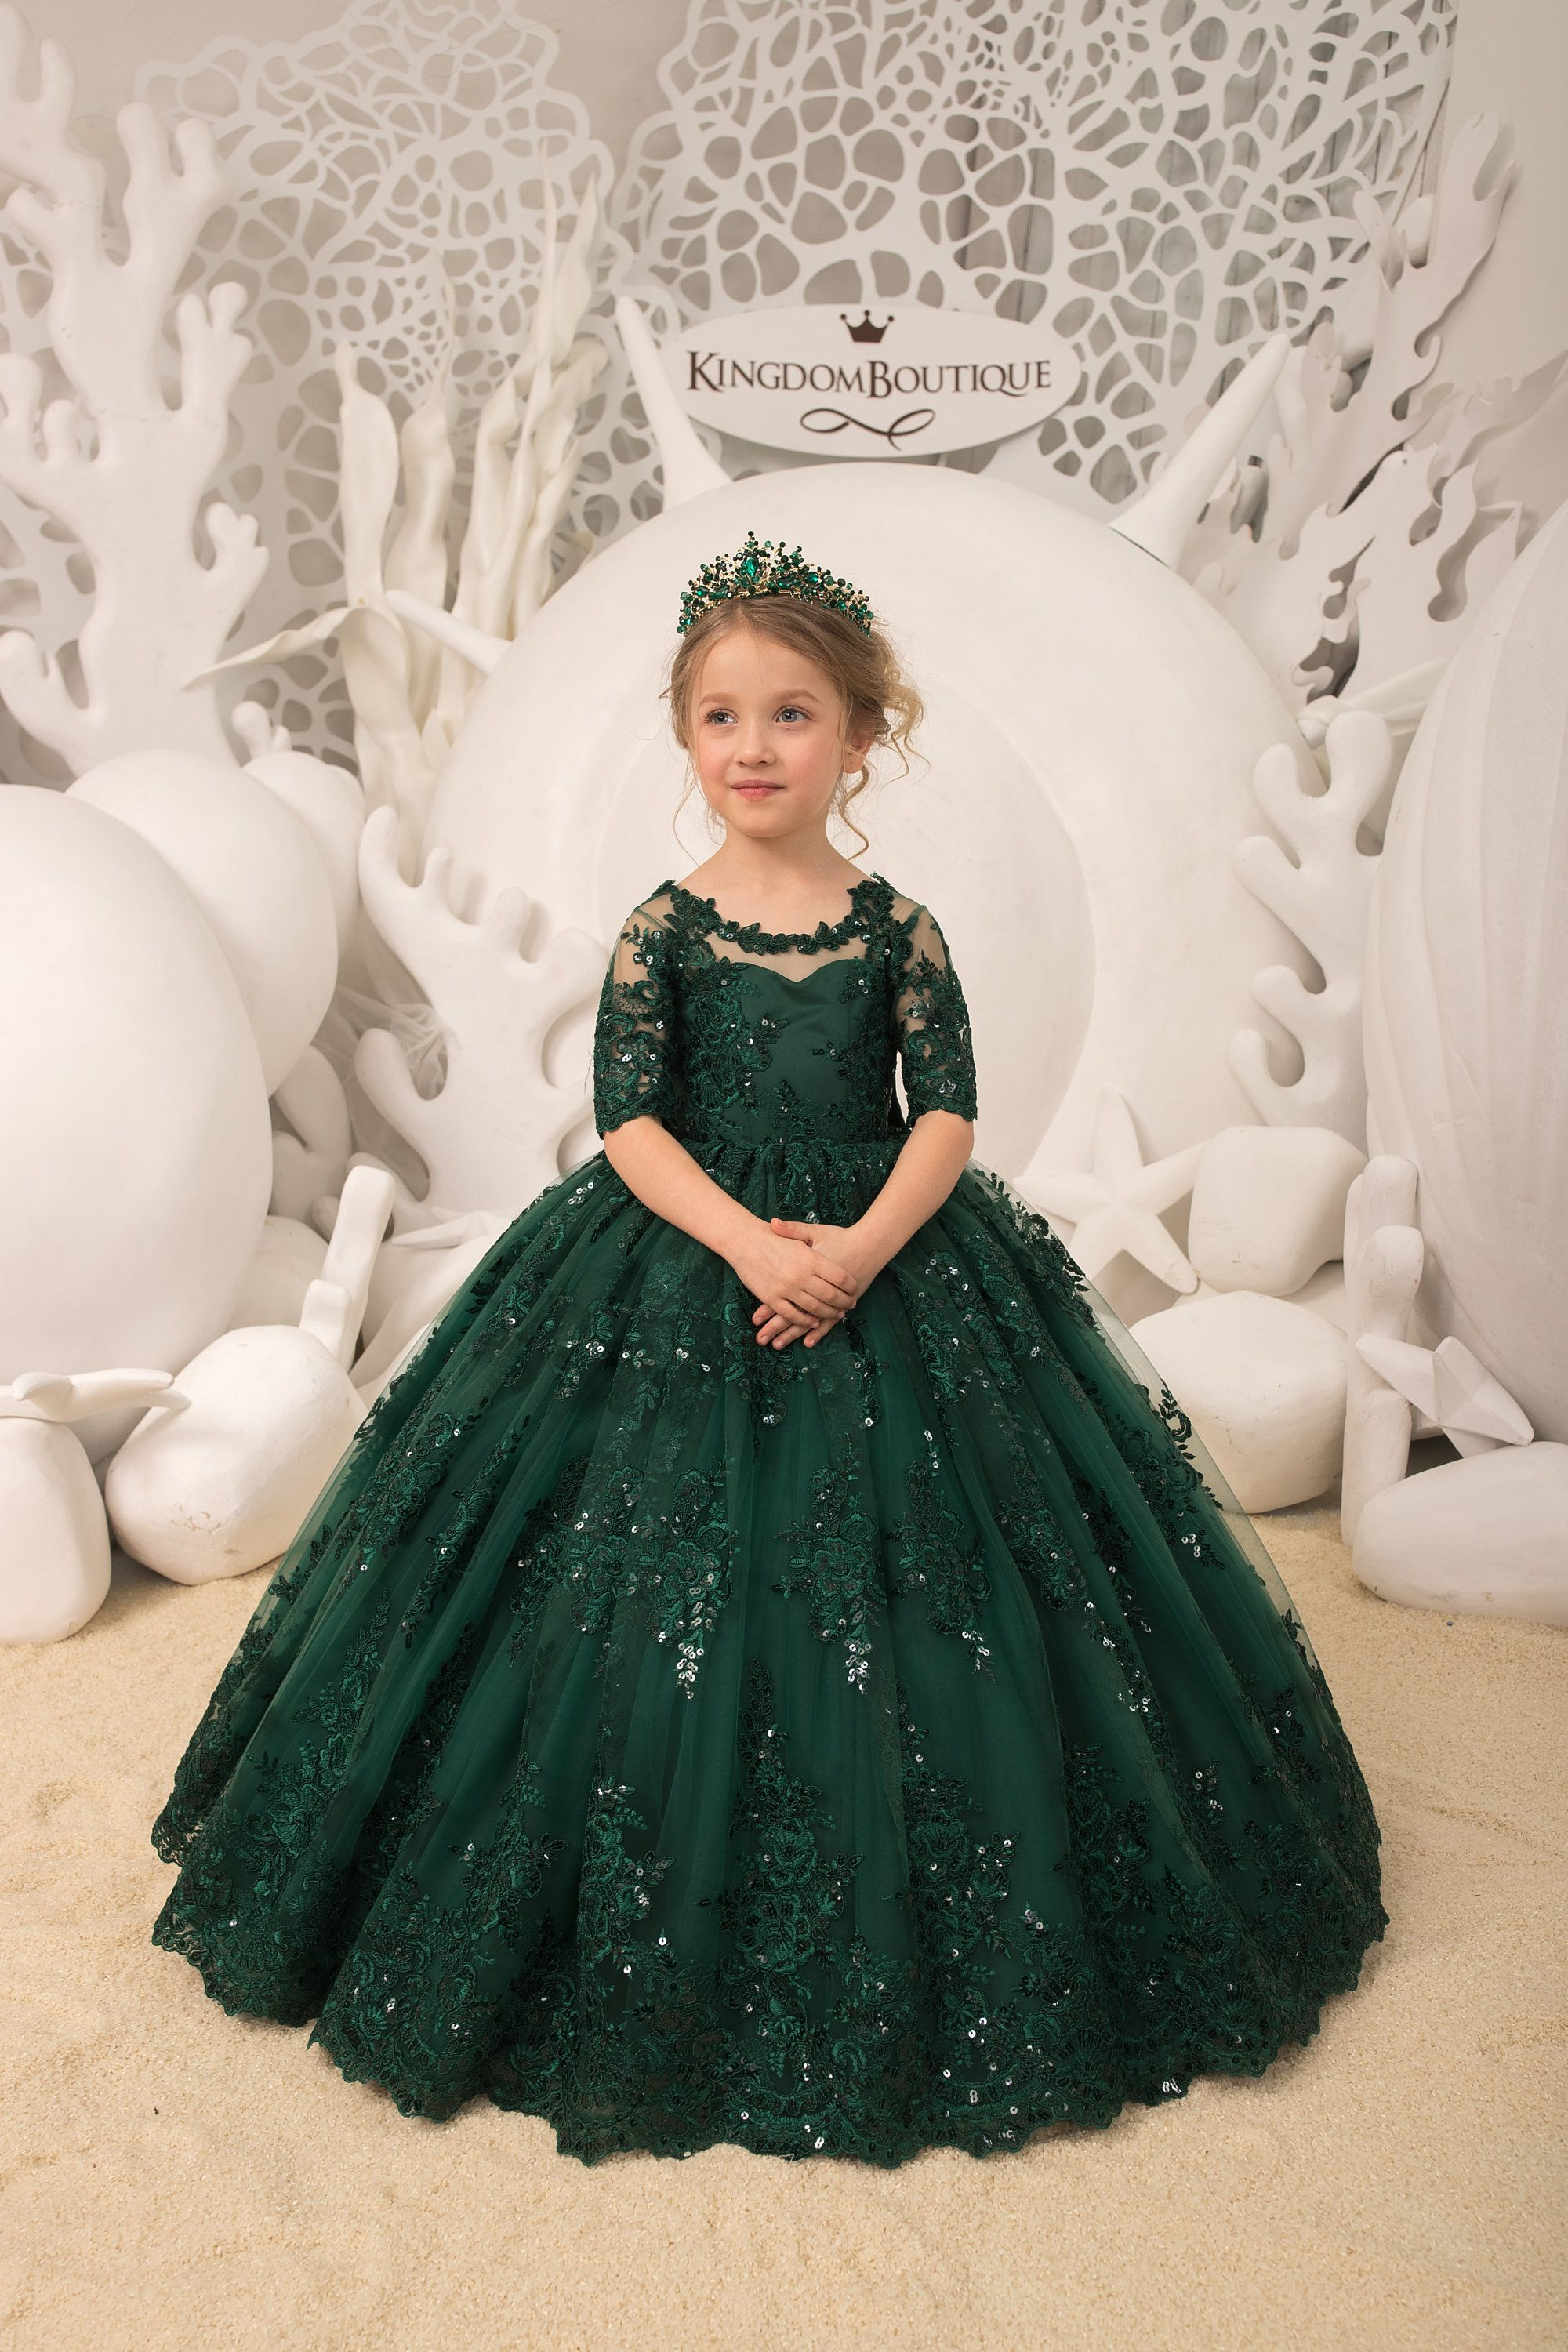 Emerald Green Flower Girl Dress Birthday Wedding Party Holiday Bridesmaid Flower Girl Emerald Tulle Lace Dress 21 112 In 2020 Green Flower Girl Dresses Girls Ball Gown Flower Girl Dresses